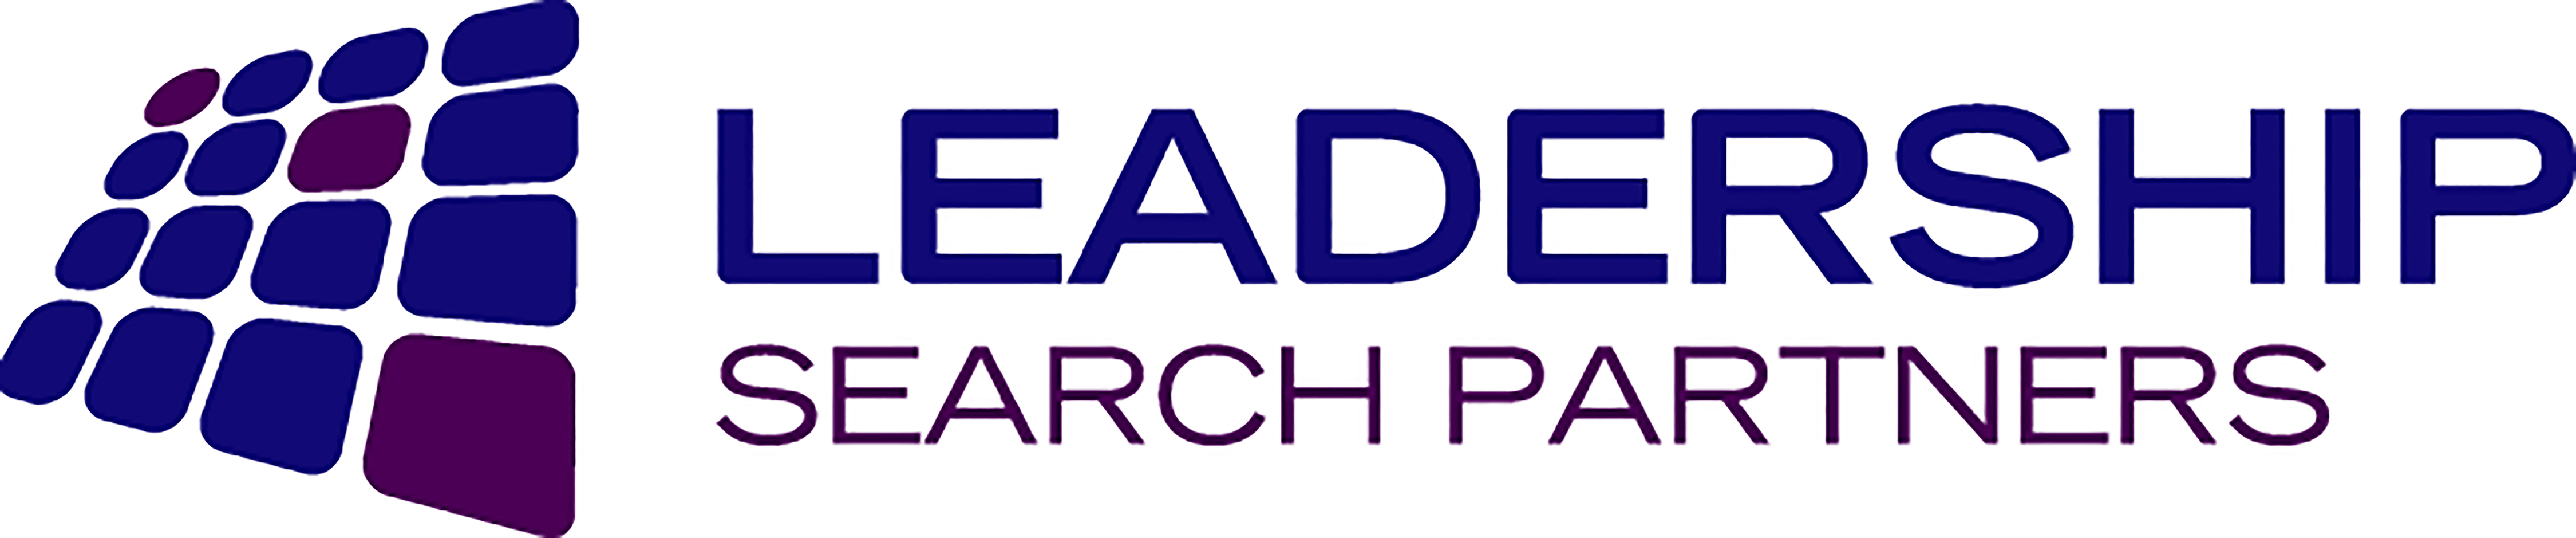 Leadership Search Partners